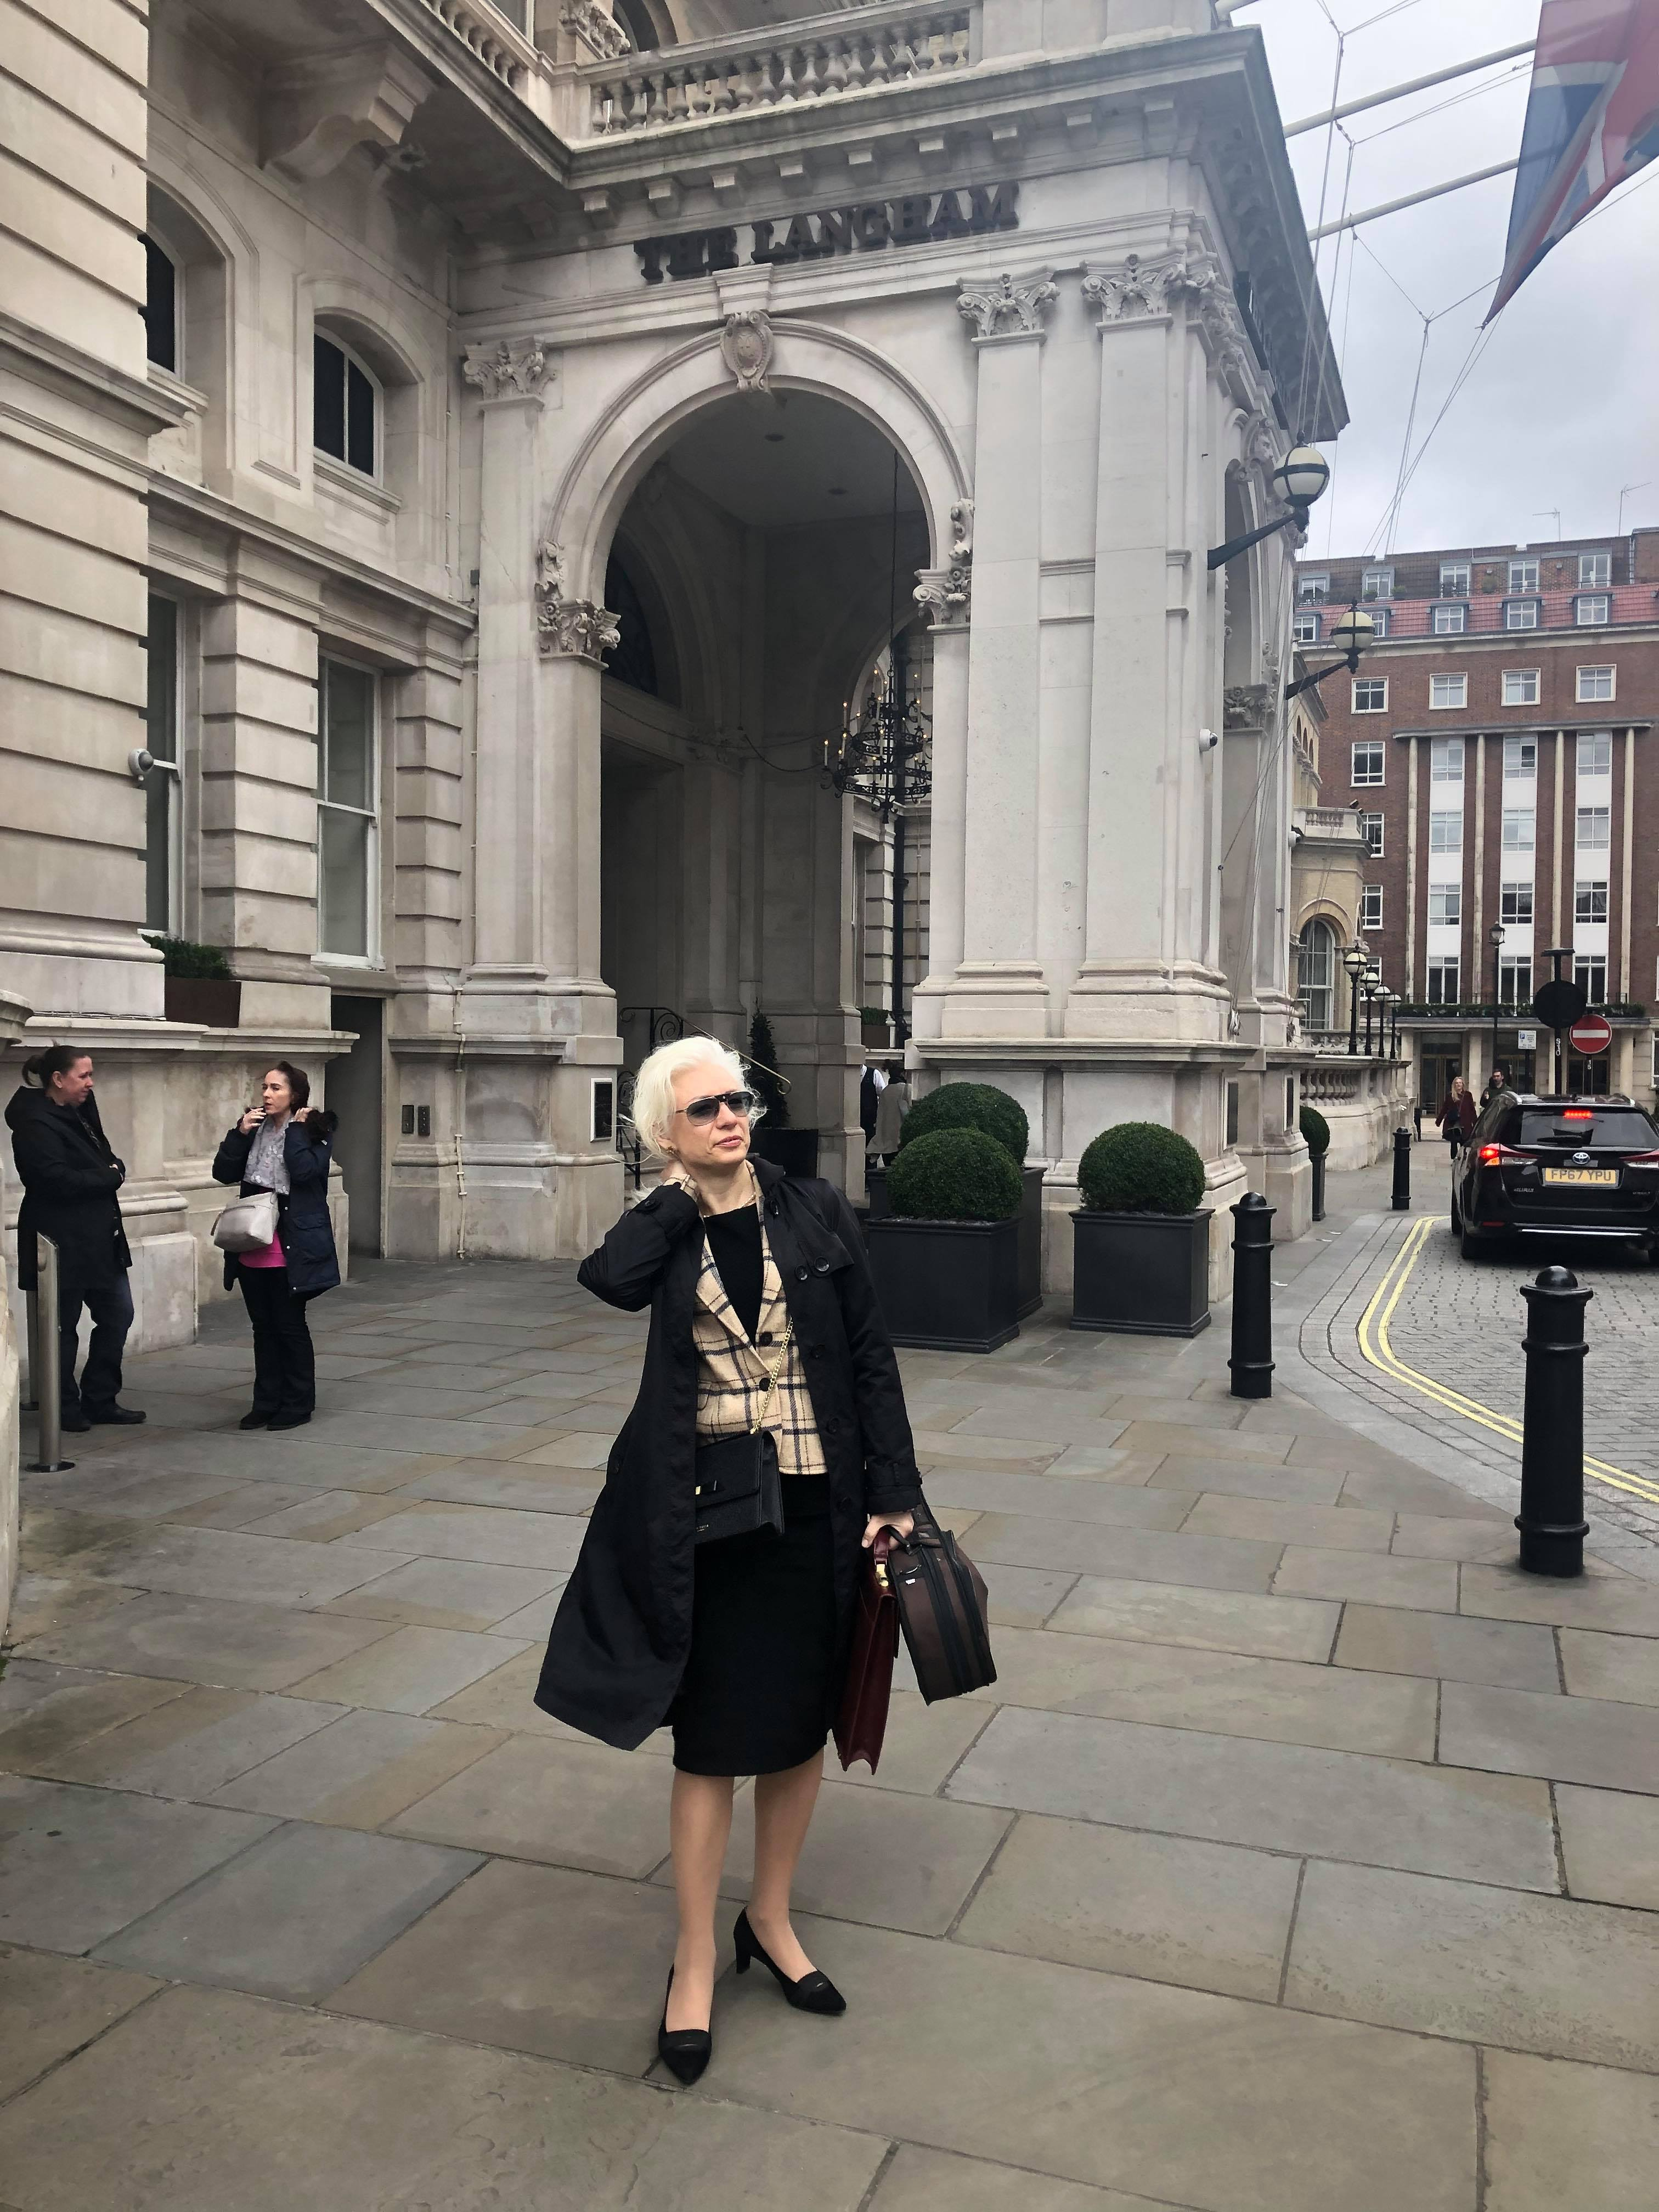 jurita kalite_london_16-03-2019 (4)